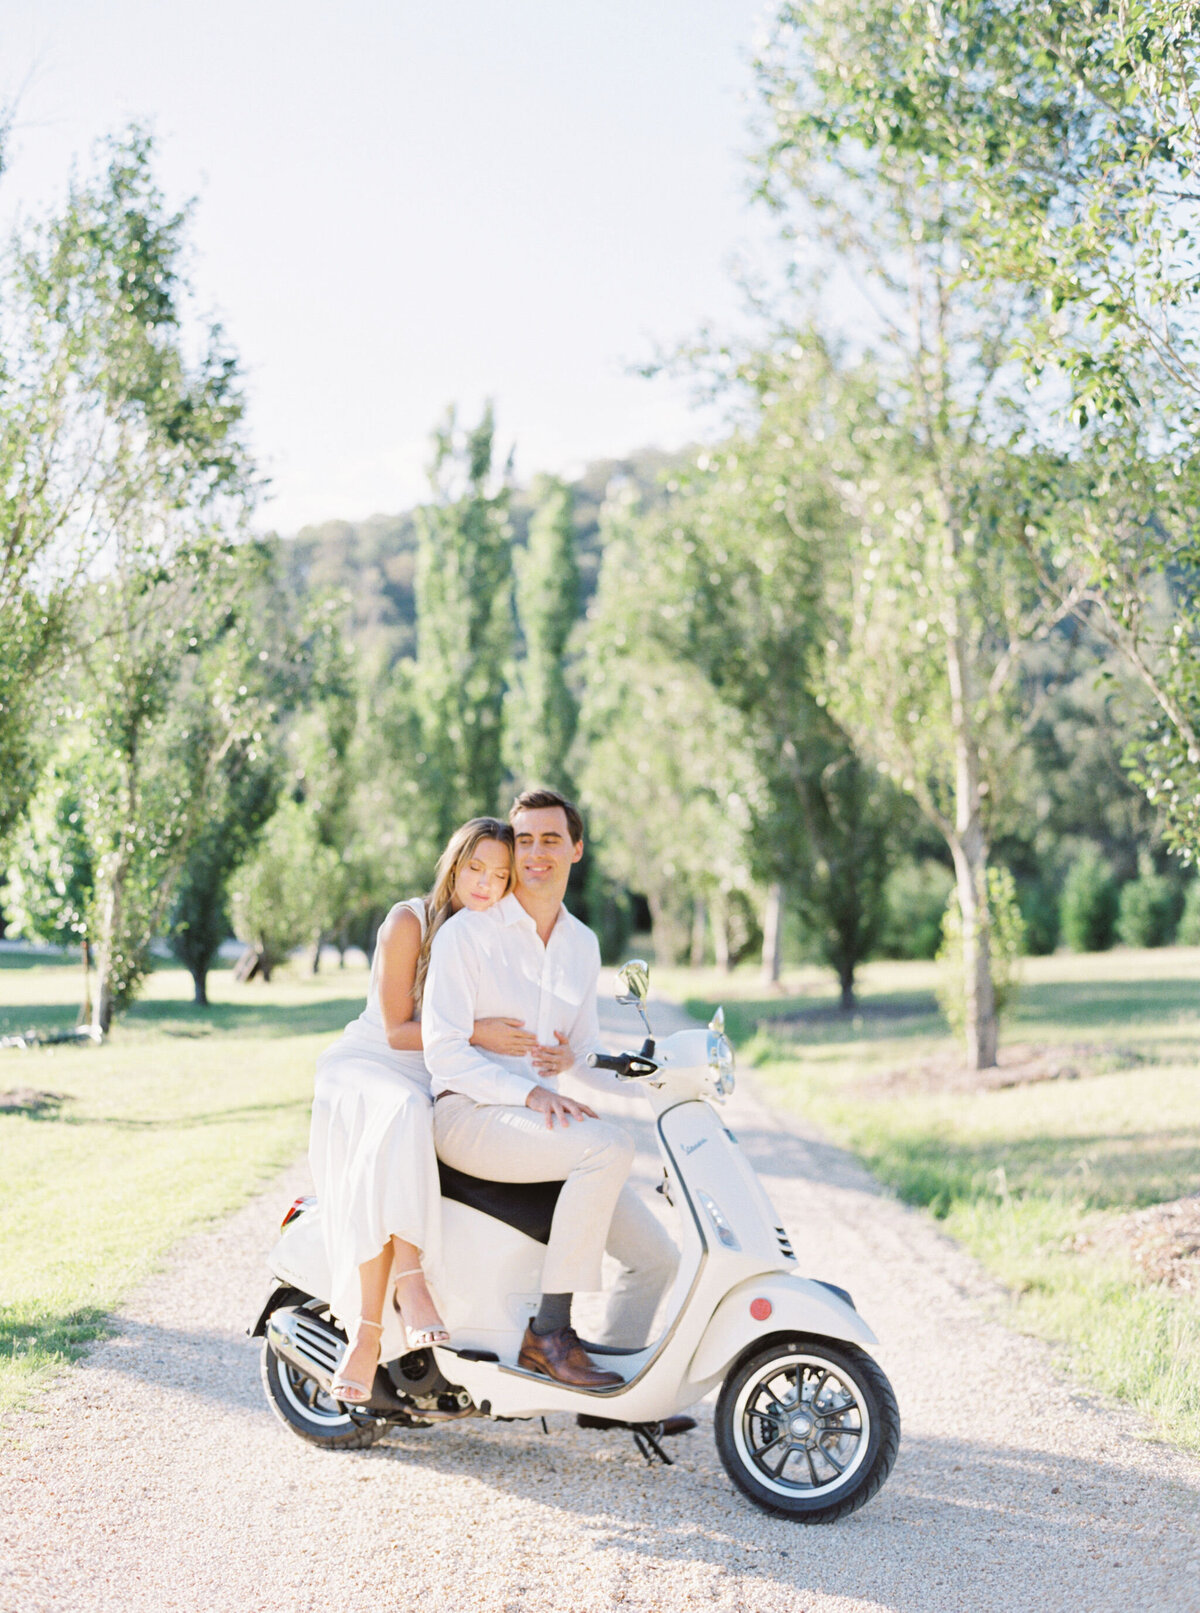 RedleafWollombiHunterValleyWeddingVenue,FineArtFilmElopementWeddingPhotographerSheriMcMahon--00473